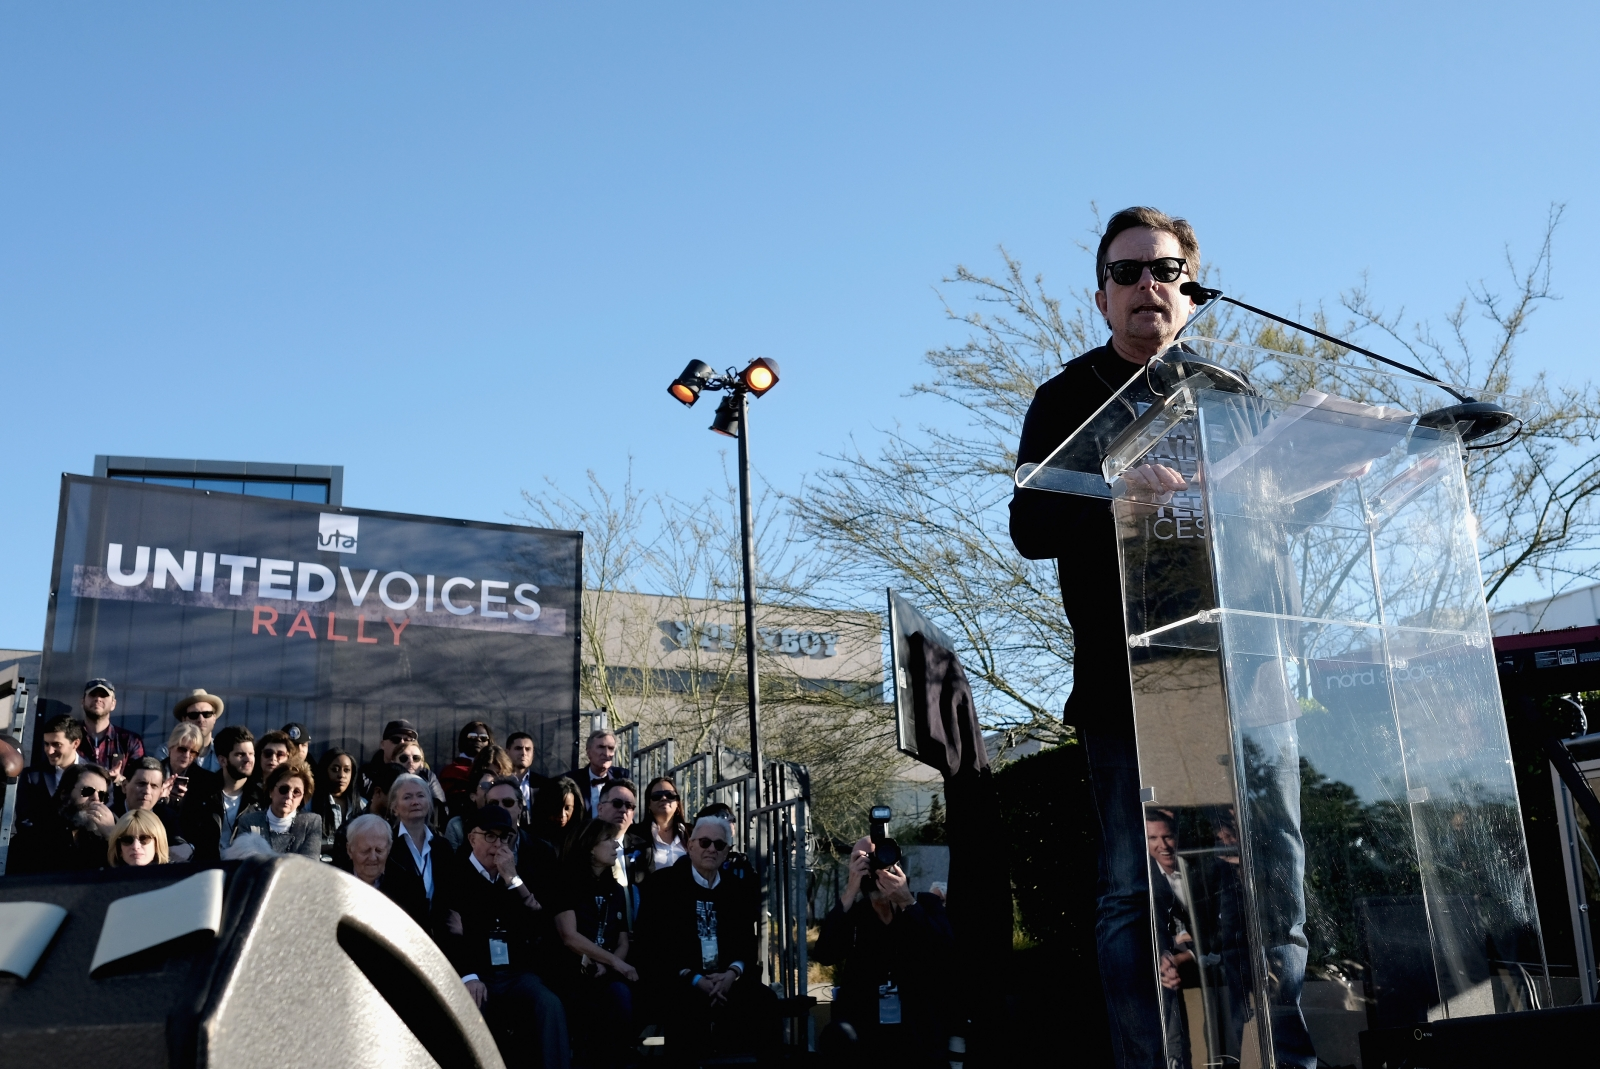 Michael J. Fox speaks at United Voices Rally